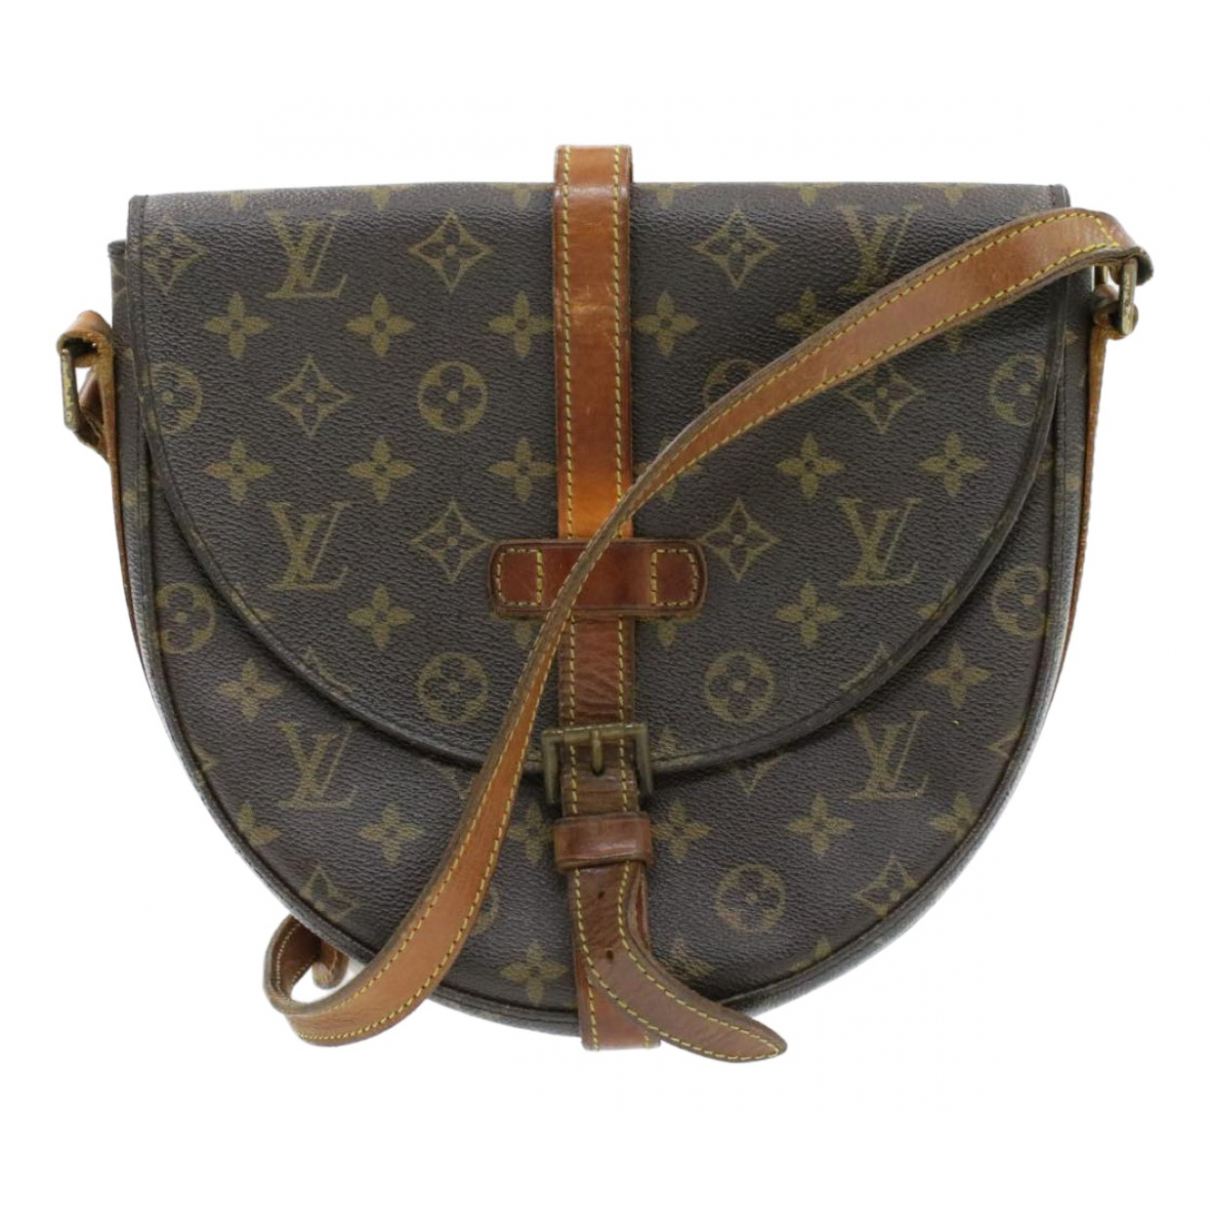 Louis Vuitton - Sac a main Chantilly pour femme en toile - marron